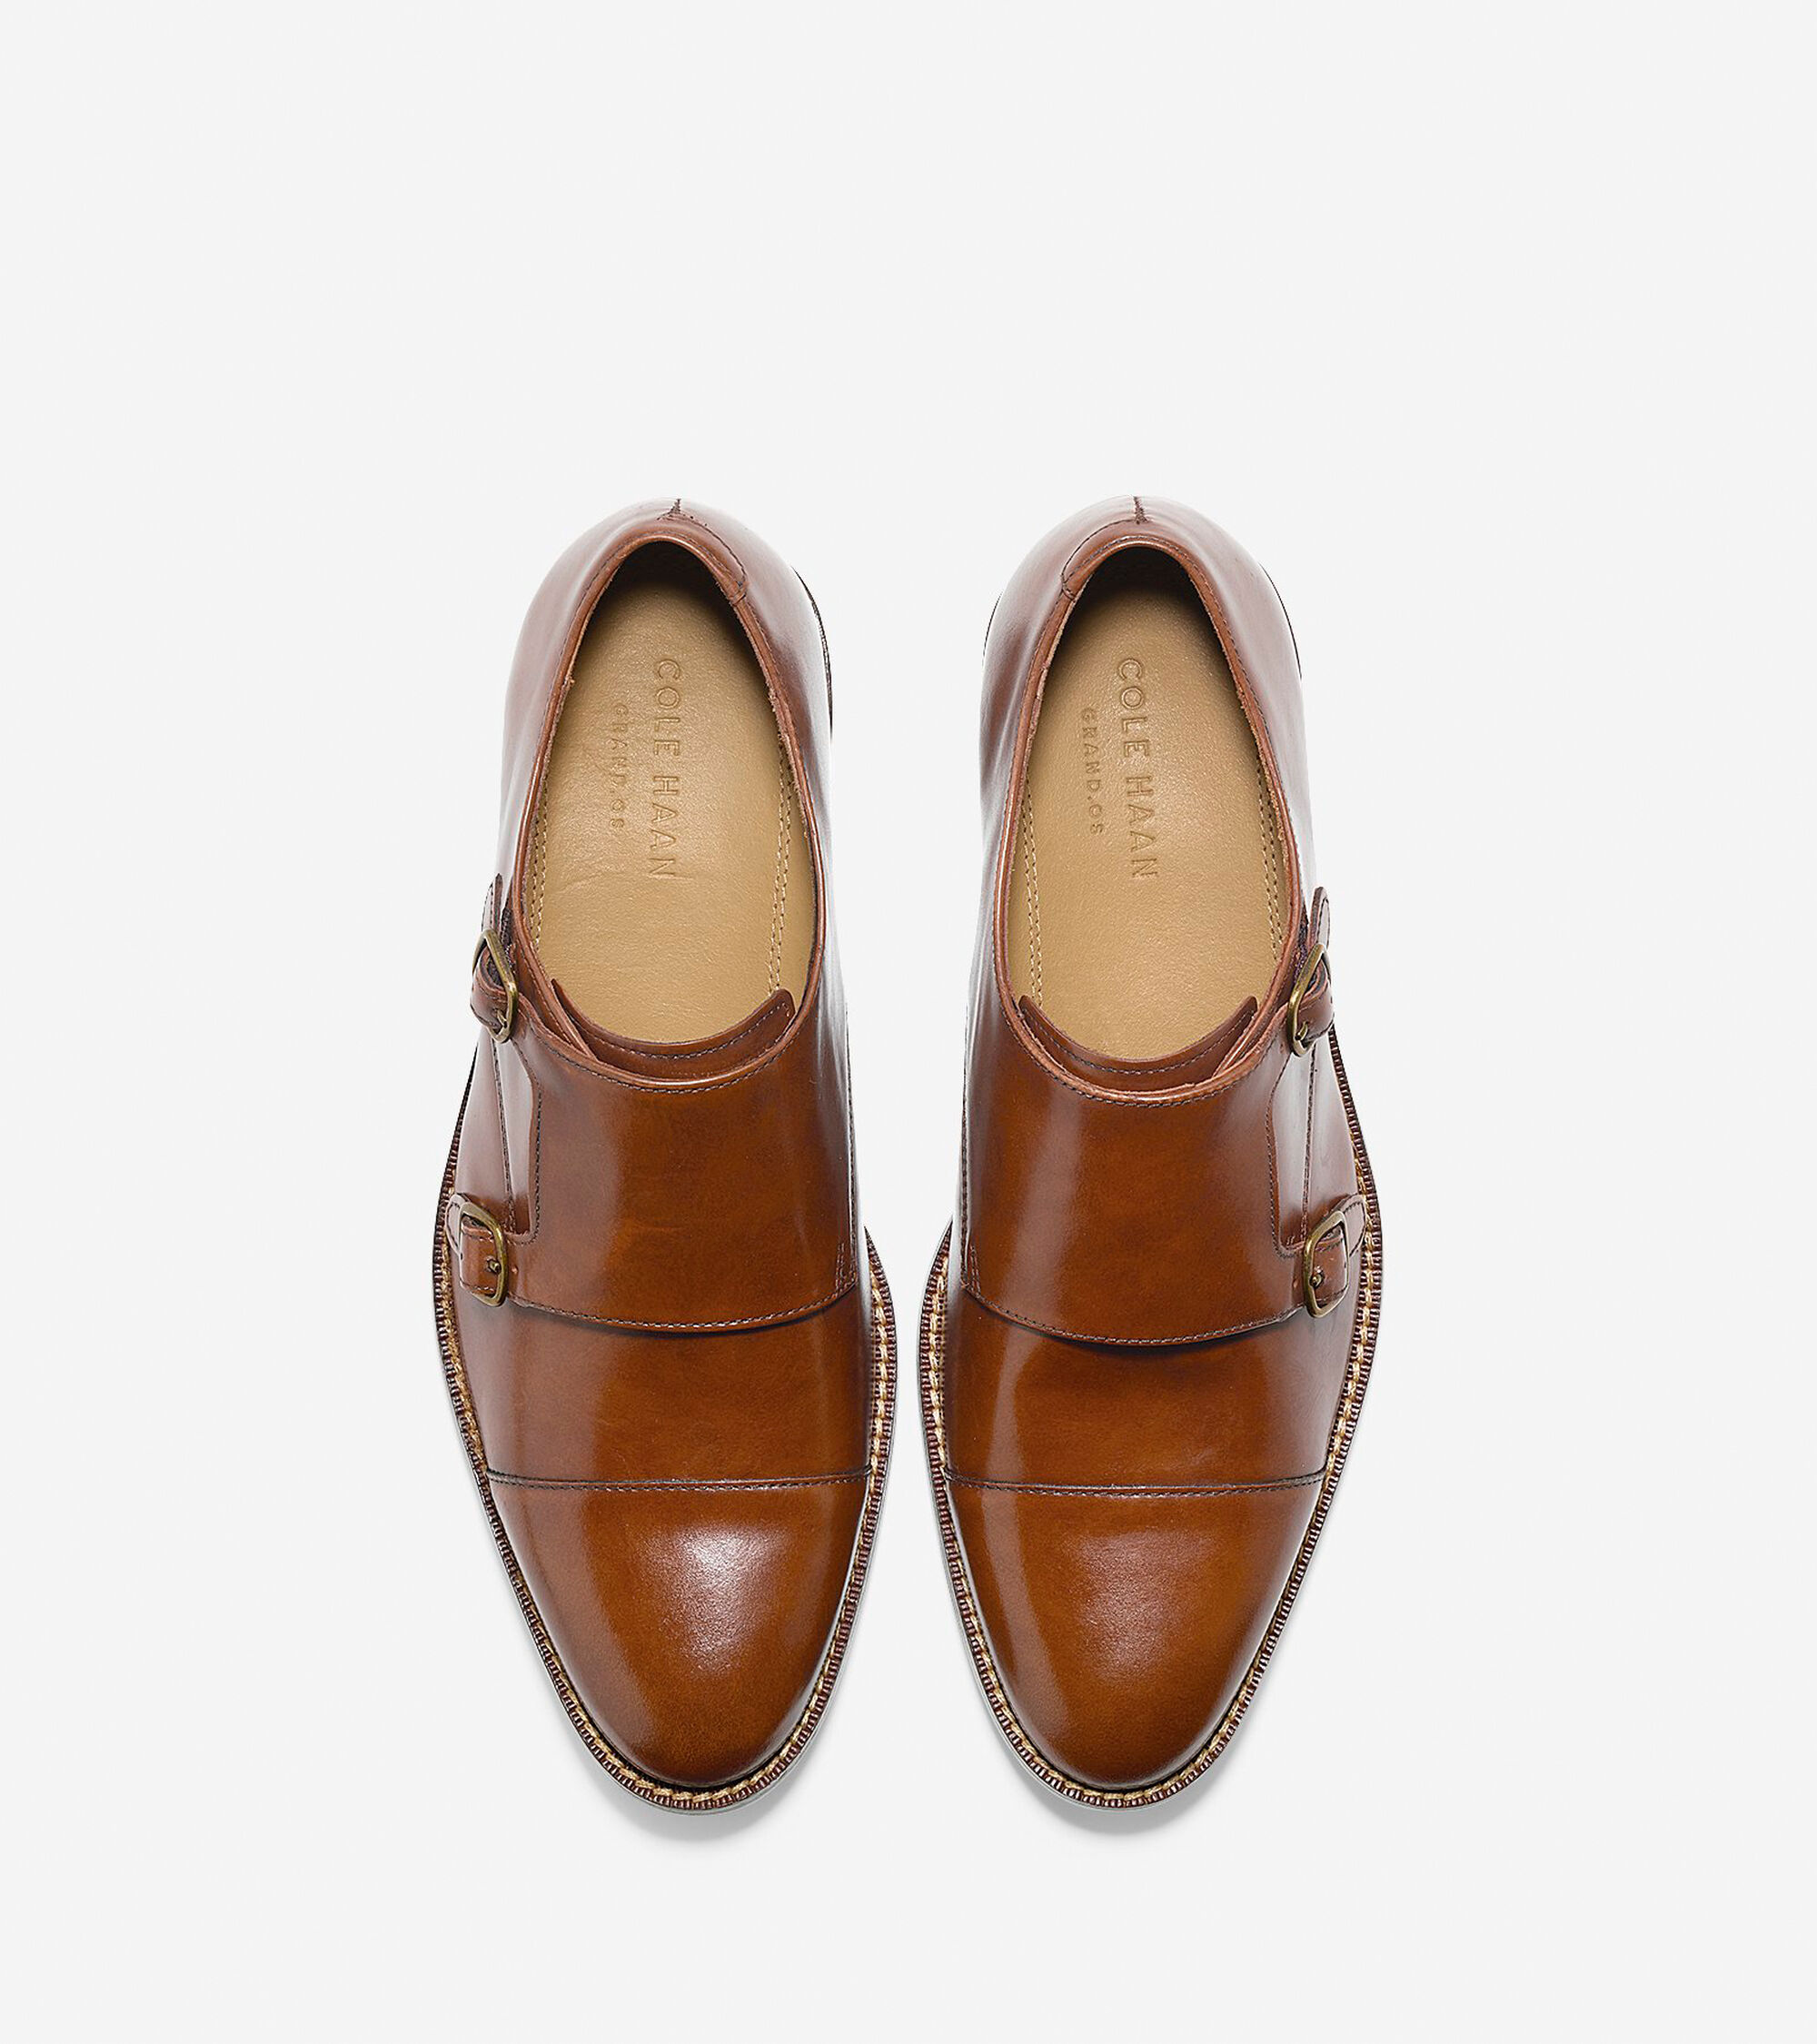 4909f65f48976 Cole Haan Madison Double Monk Oxford in British Tan   ColeHaan.com